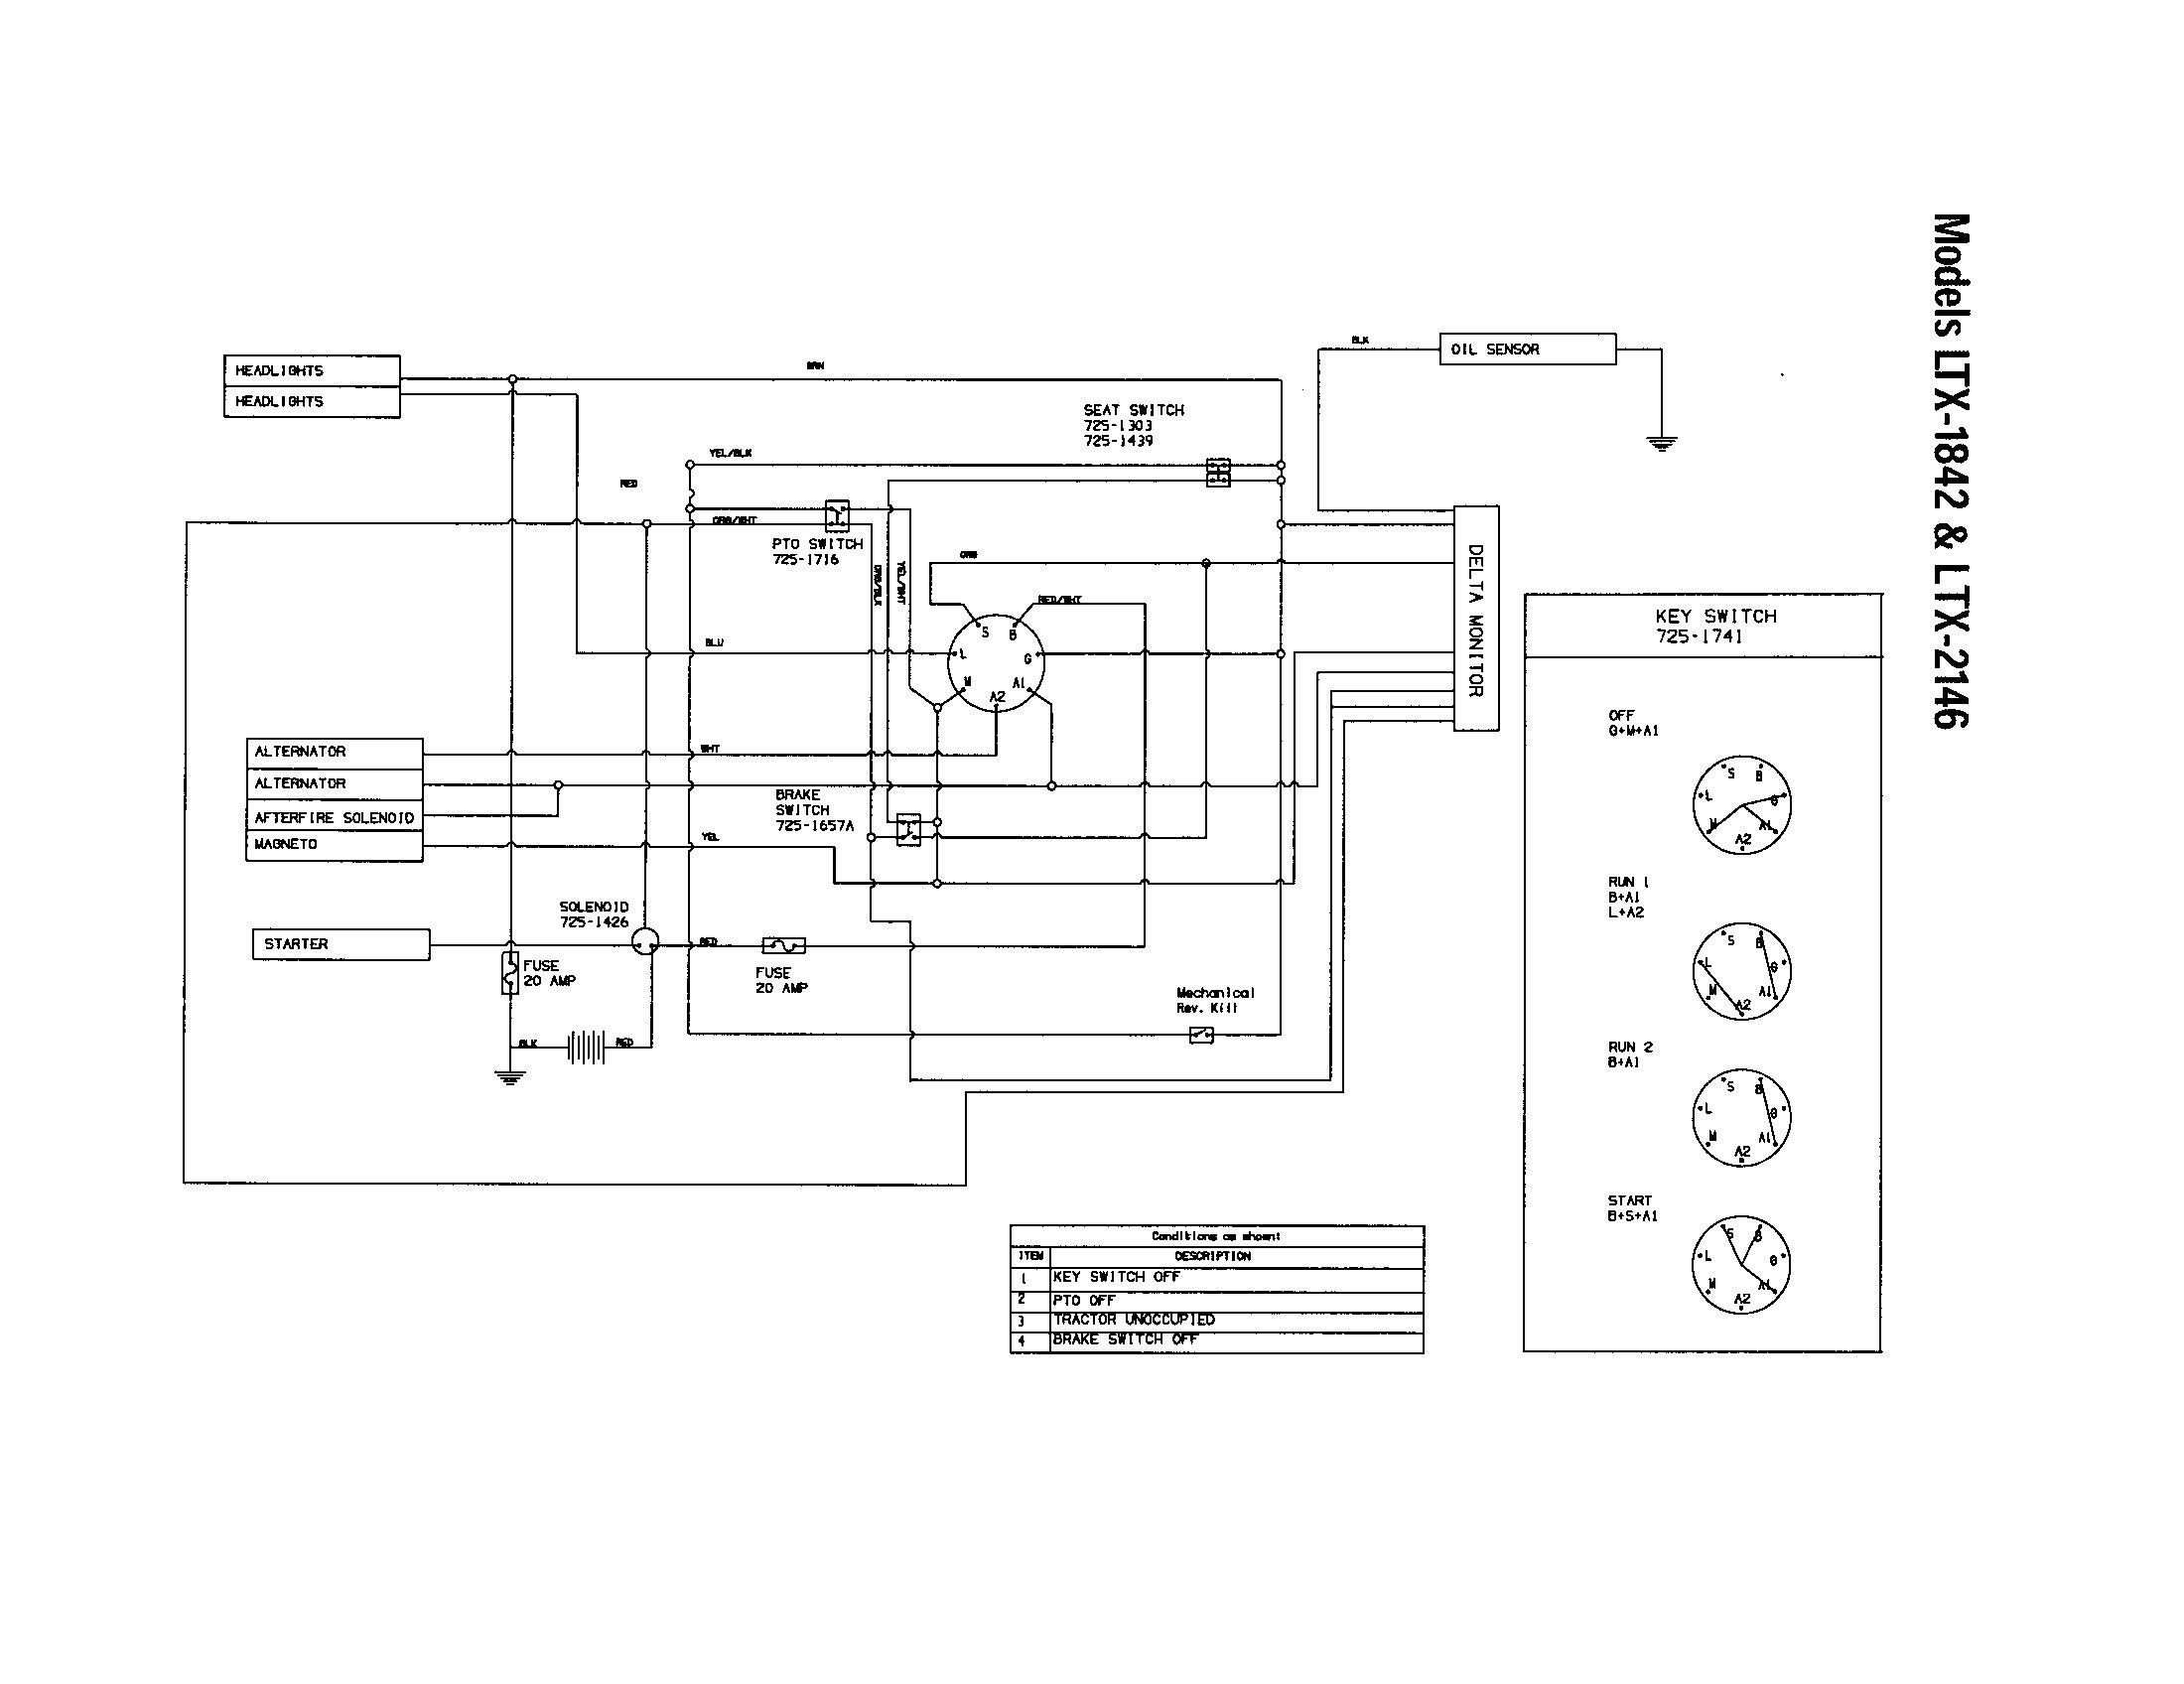 Craftsman Model 917 Wiring Diagram Elegant In 2020 Riding Mower Diagram Electrical Diagram